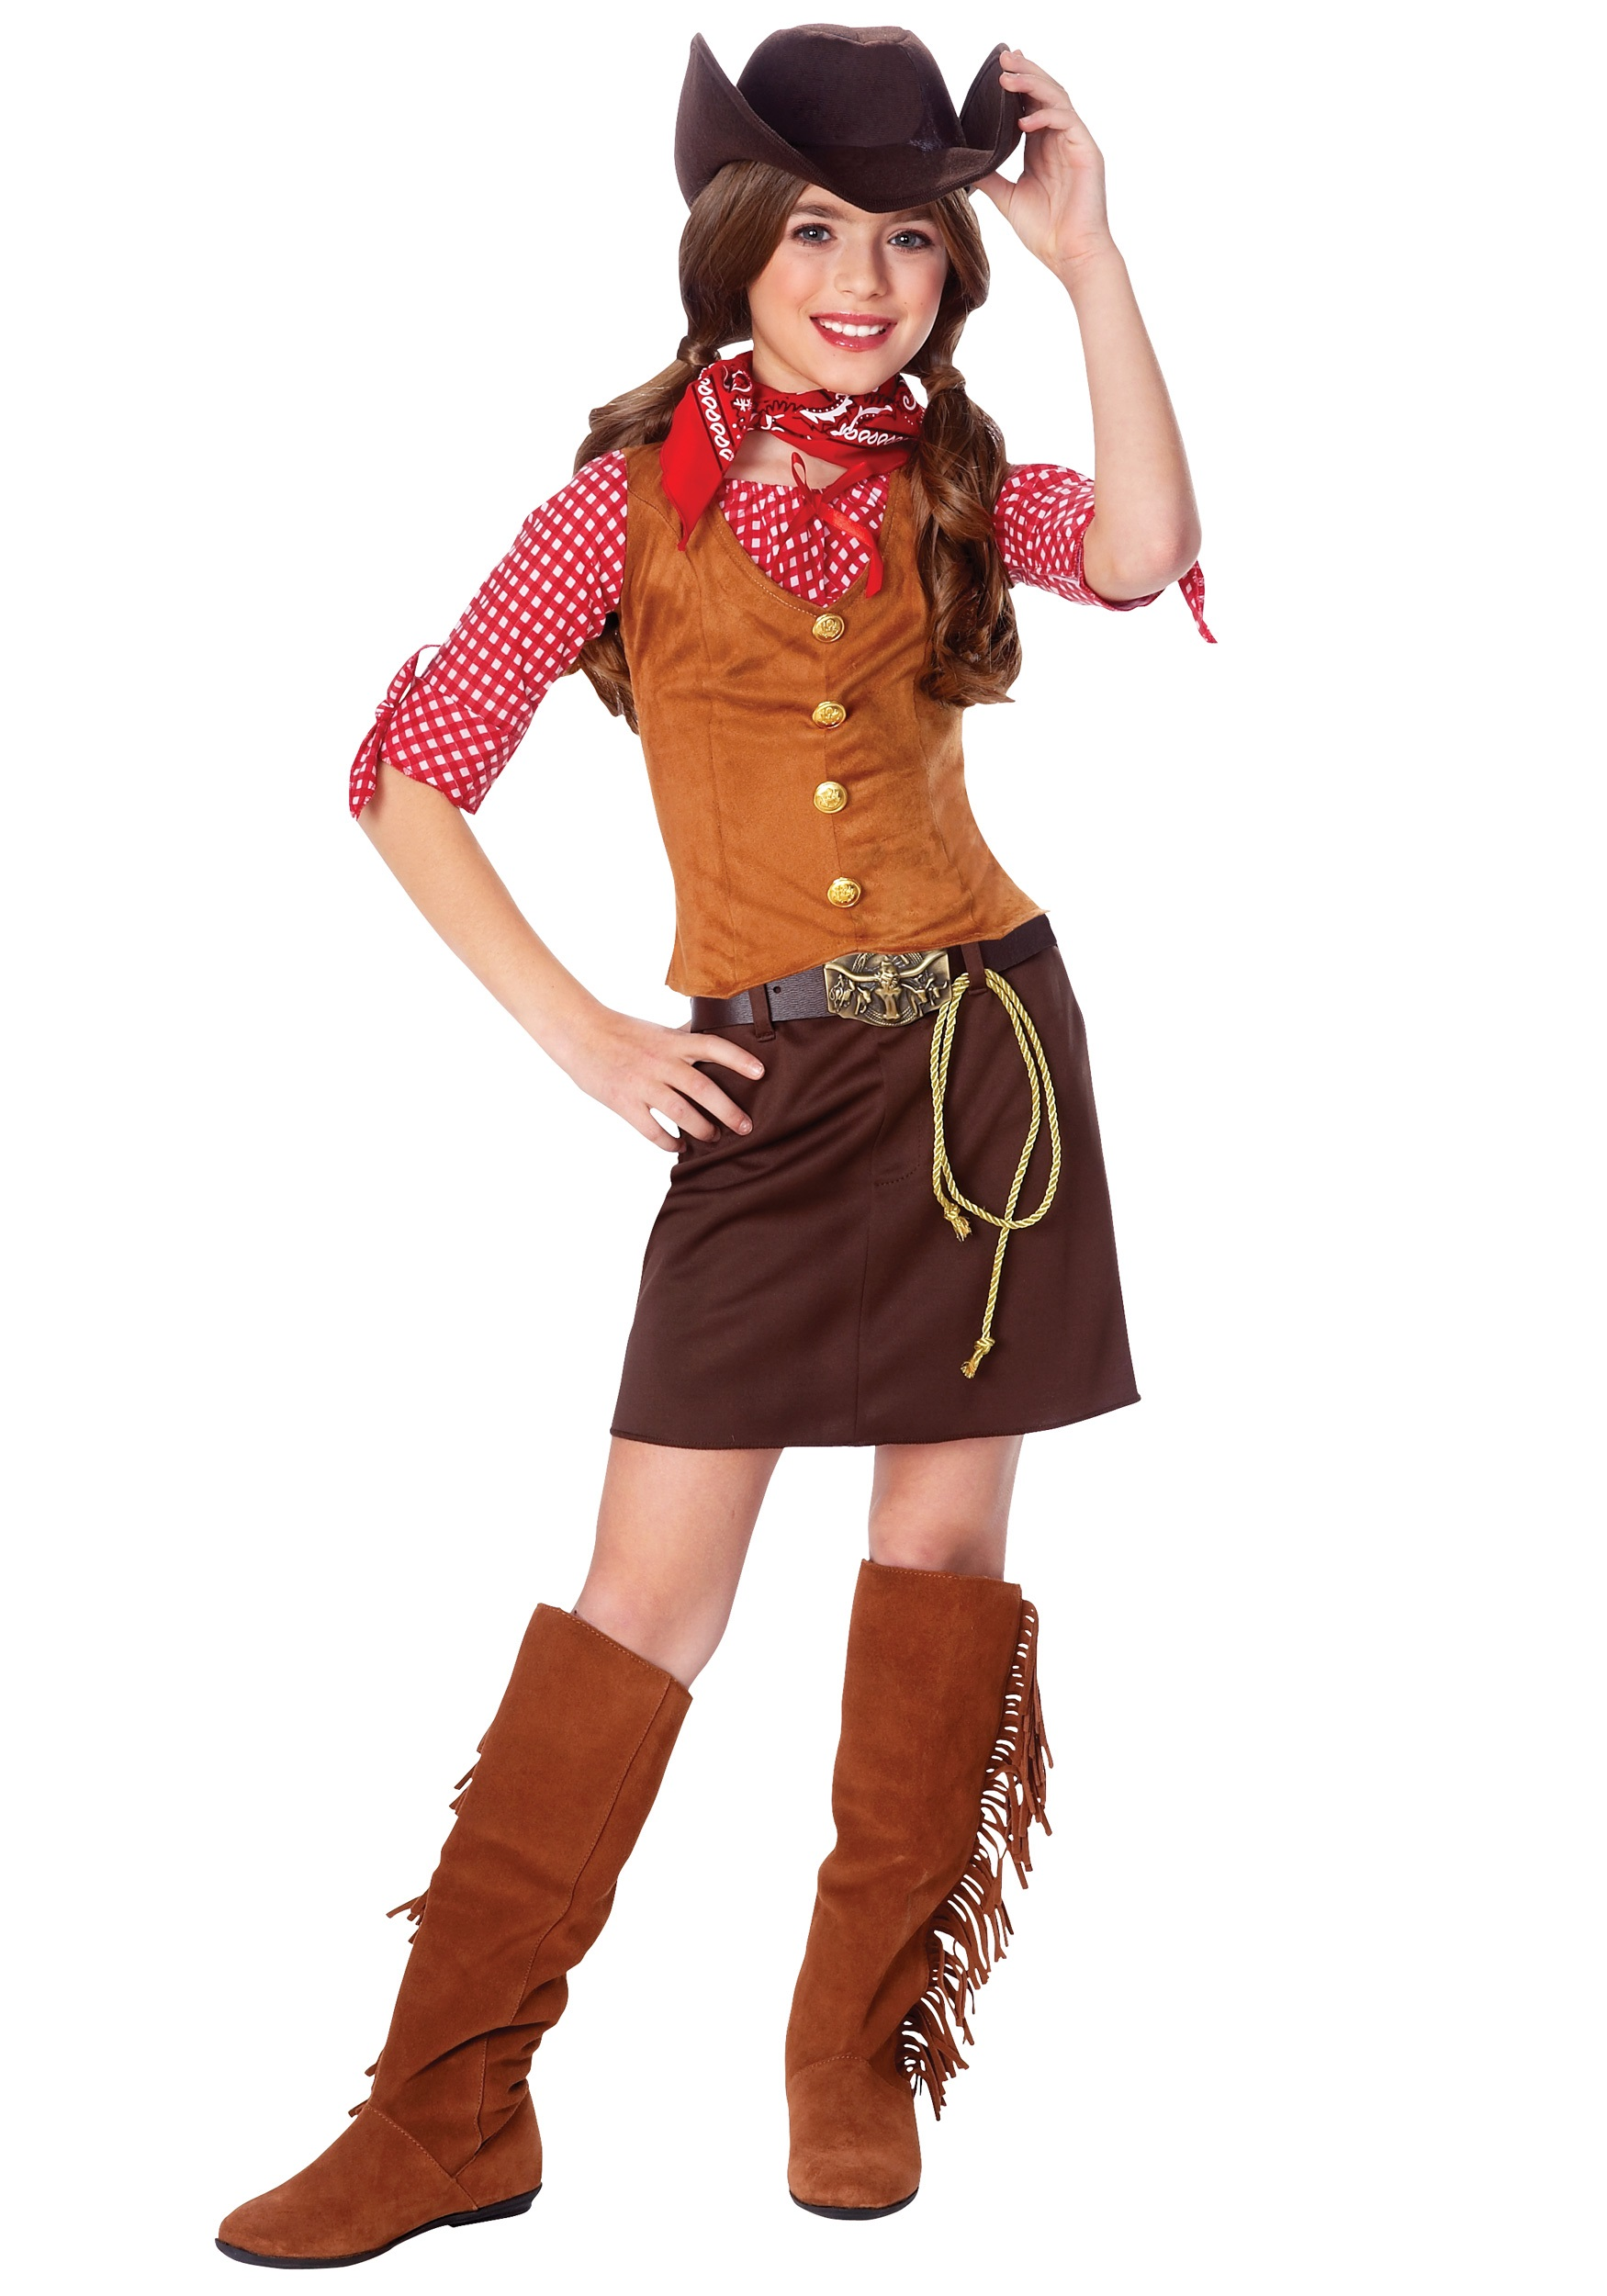 Cowboy costume for girls - photo#3